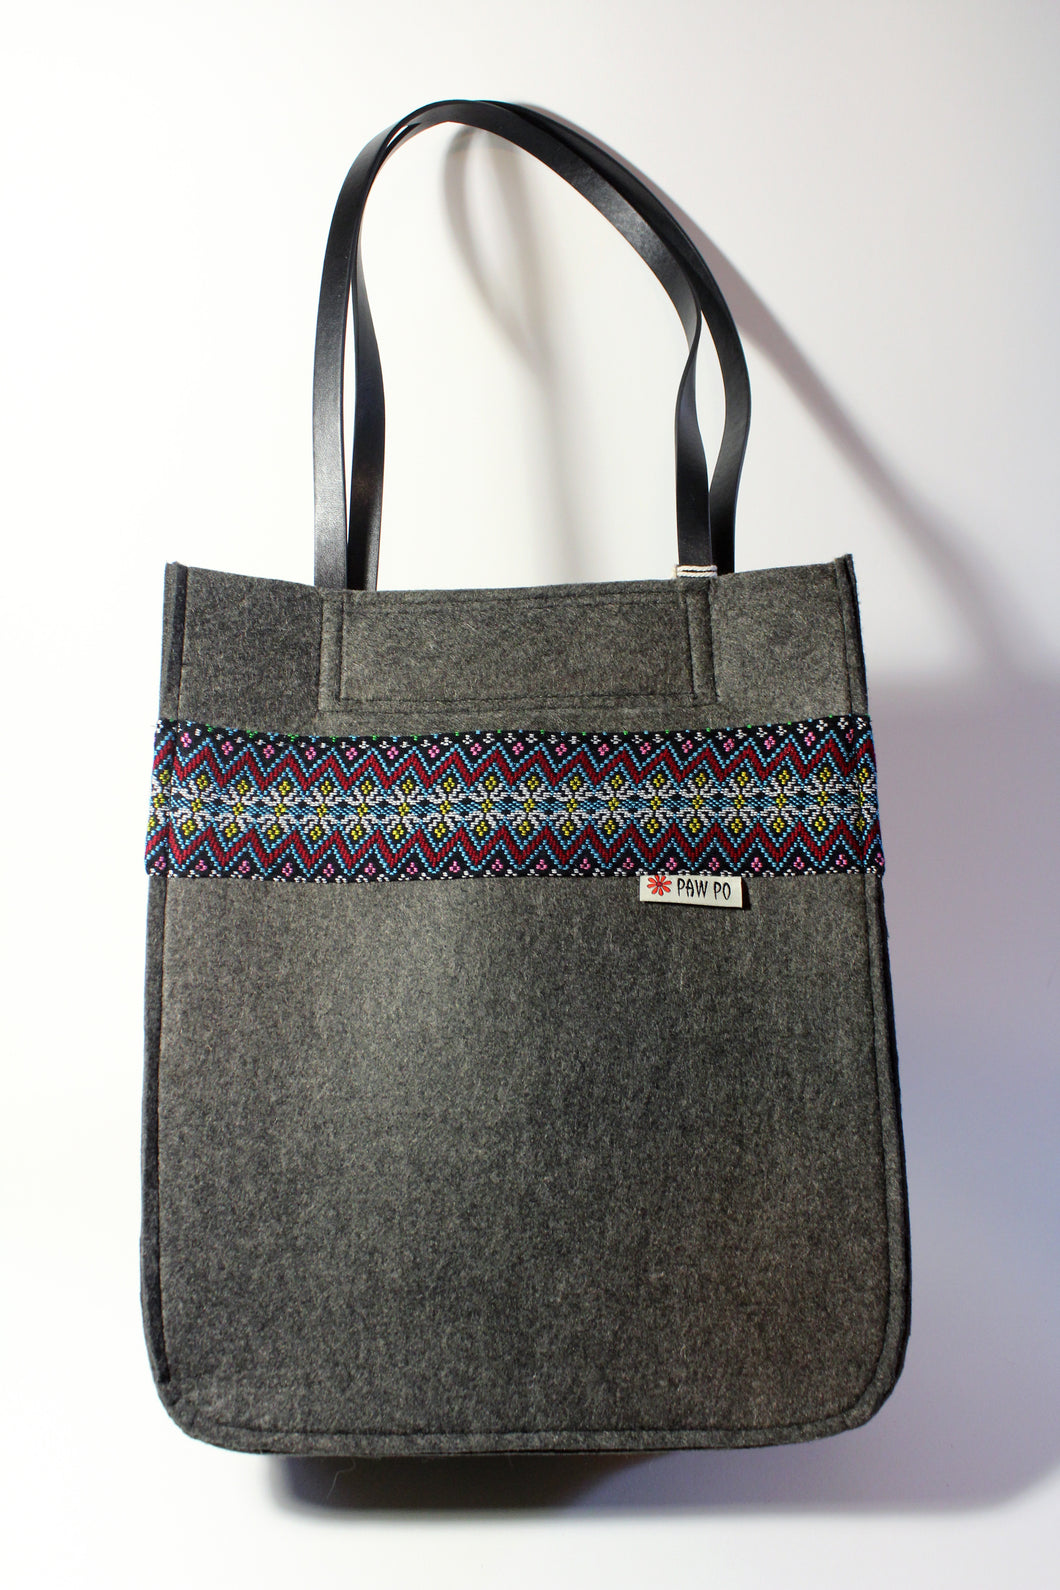 Dark Grey Felt Bag with Handwoven Fabric Accent